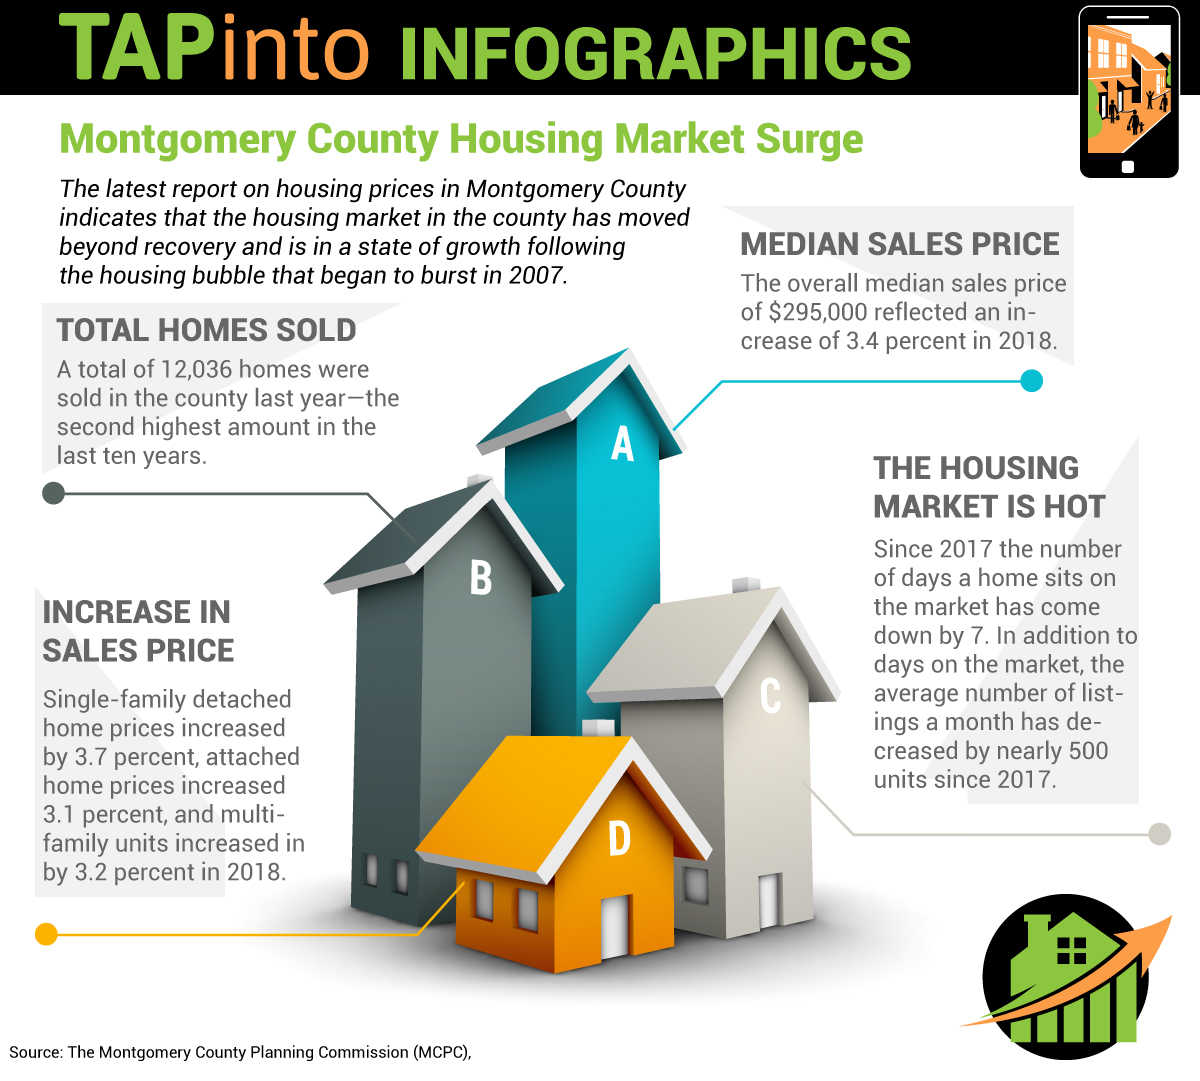 Montgomery County Housing Market Surge Infographic by TAPinto